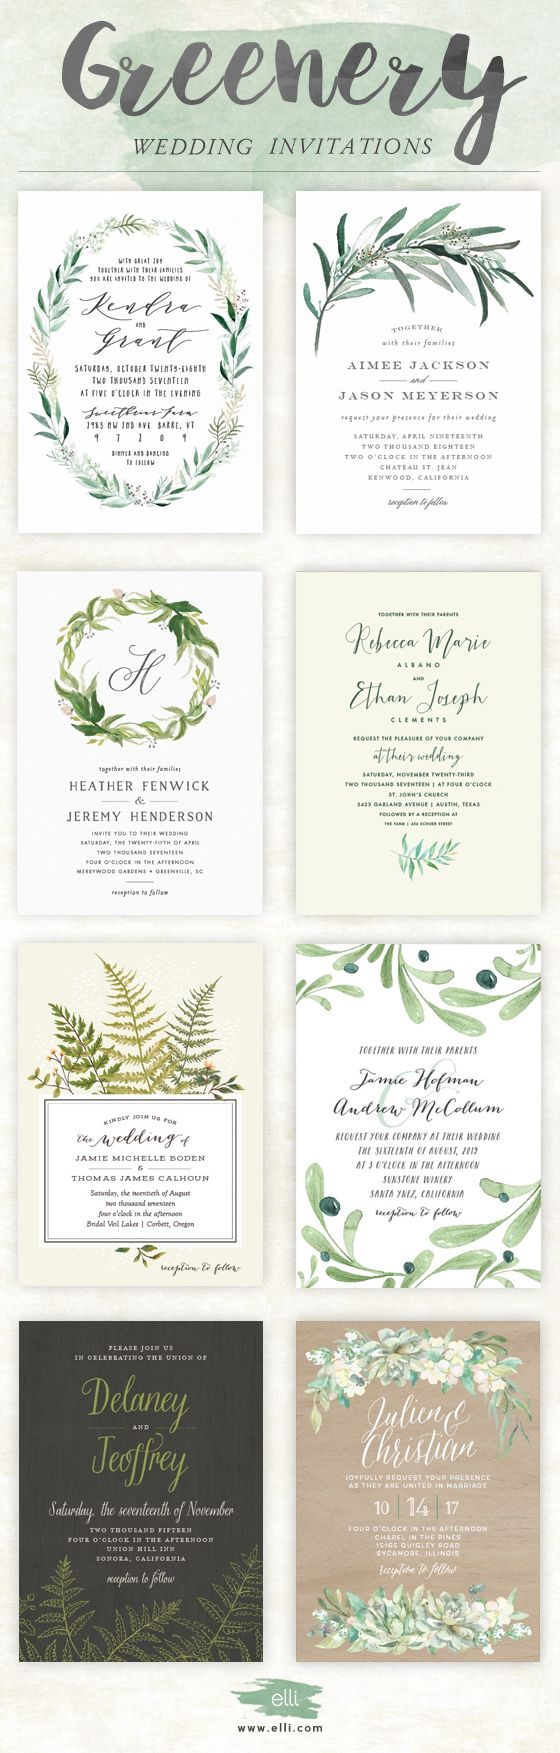 design printable invitation cards online free%0A Trending for       greenery wedding invitations from Elli com